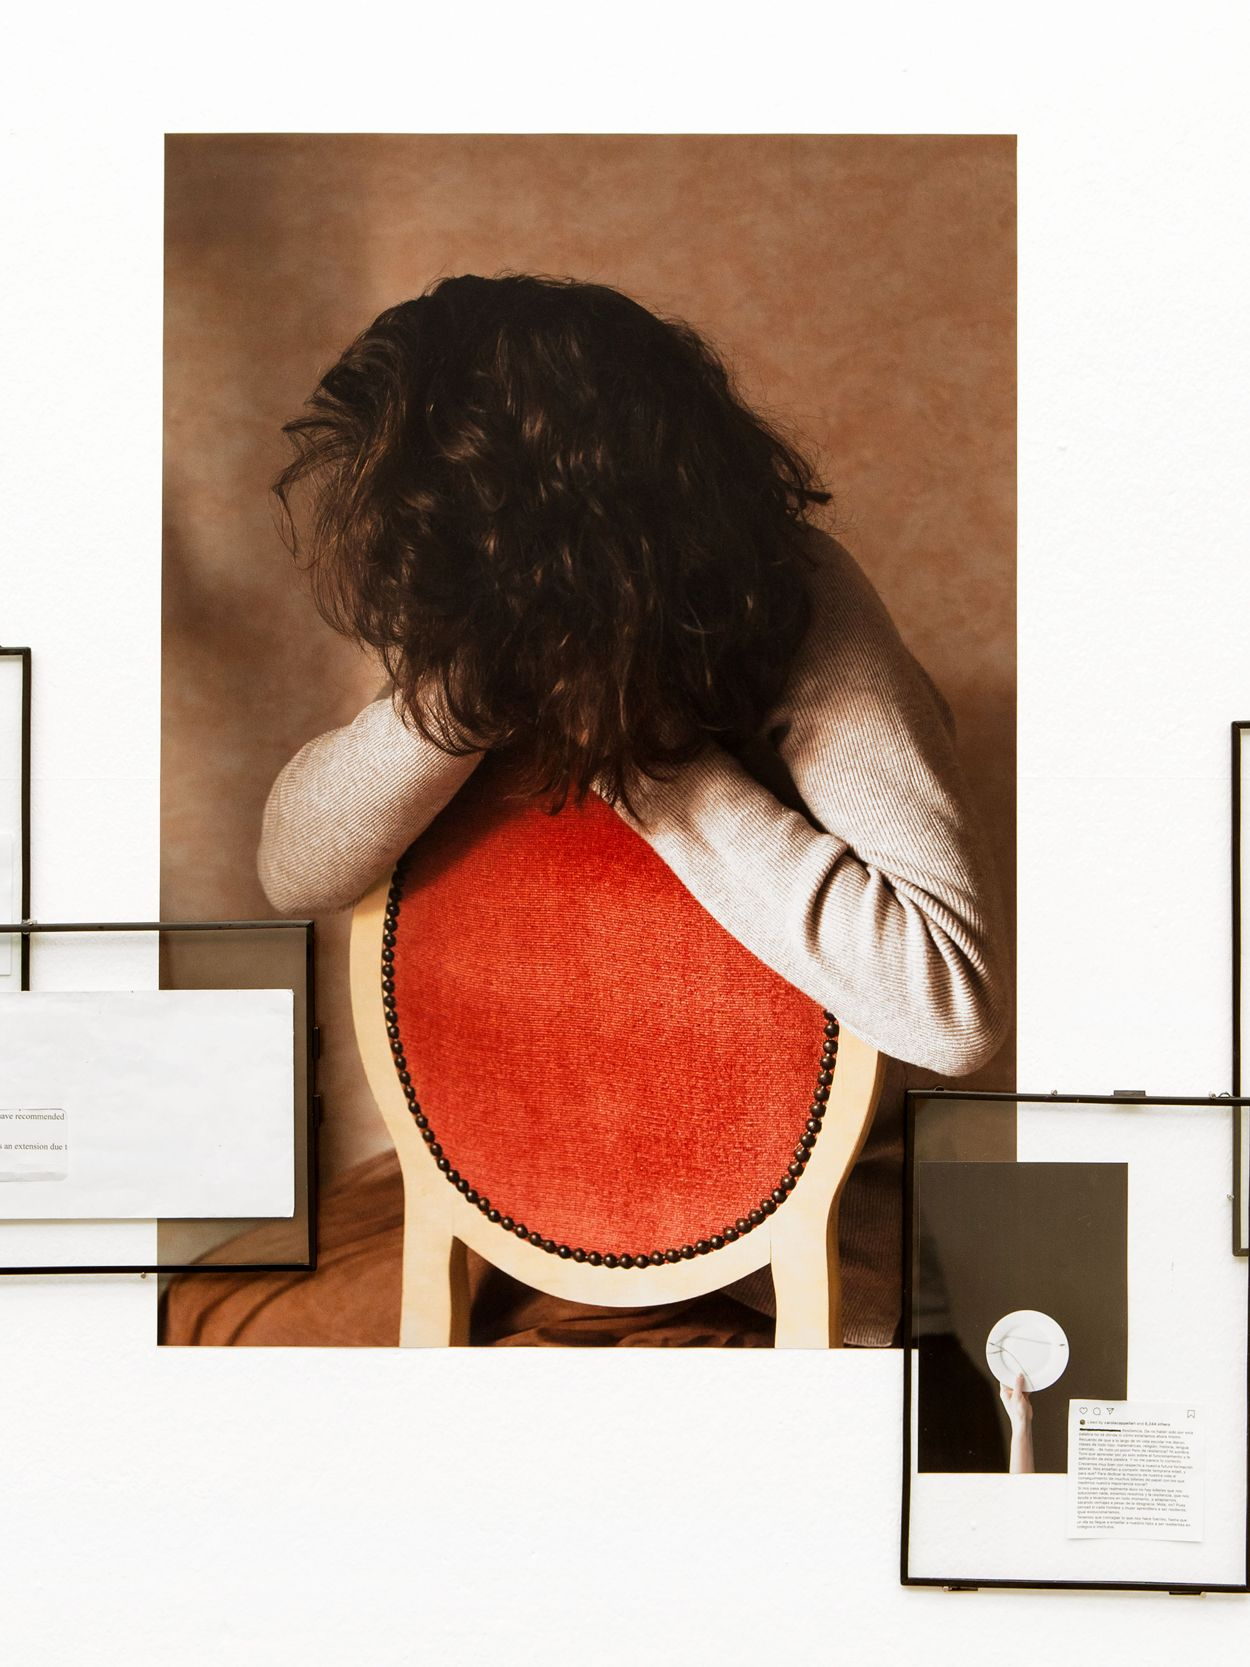 Mixed media photograph of a woman sitting on a red chair